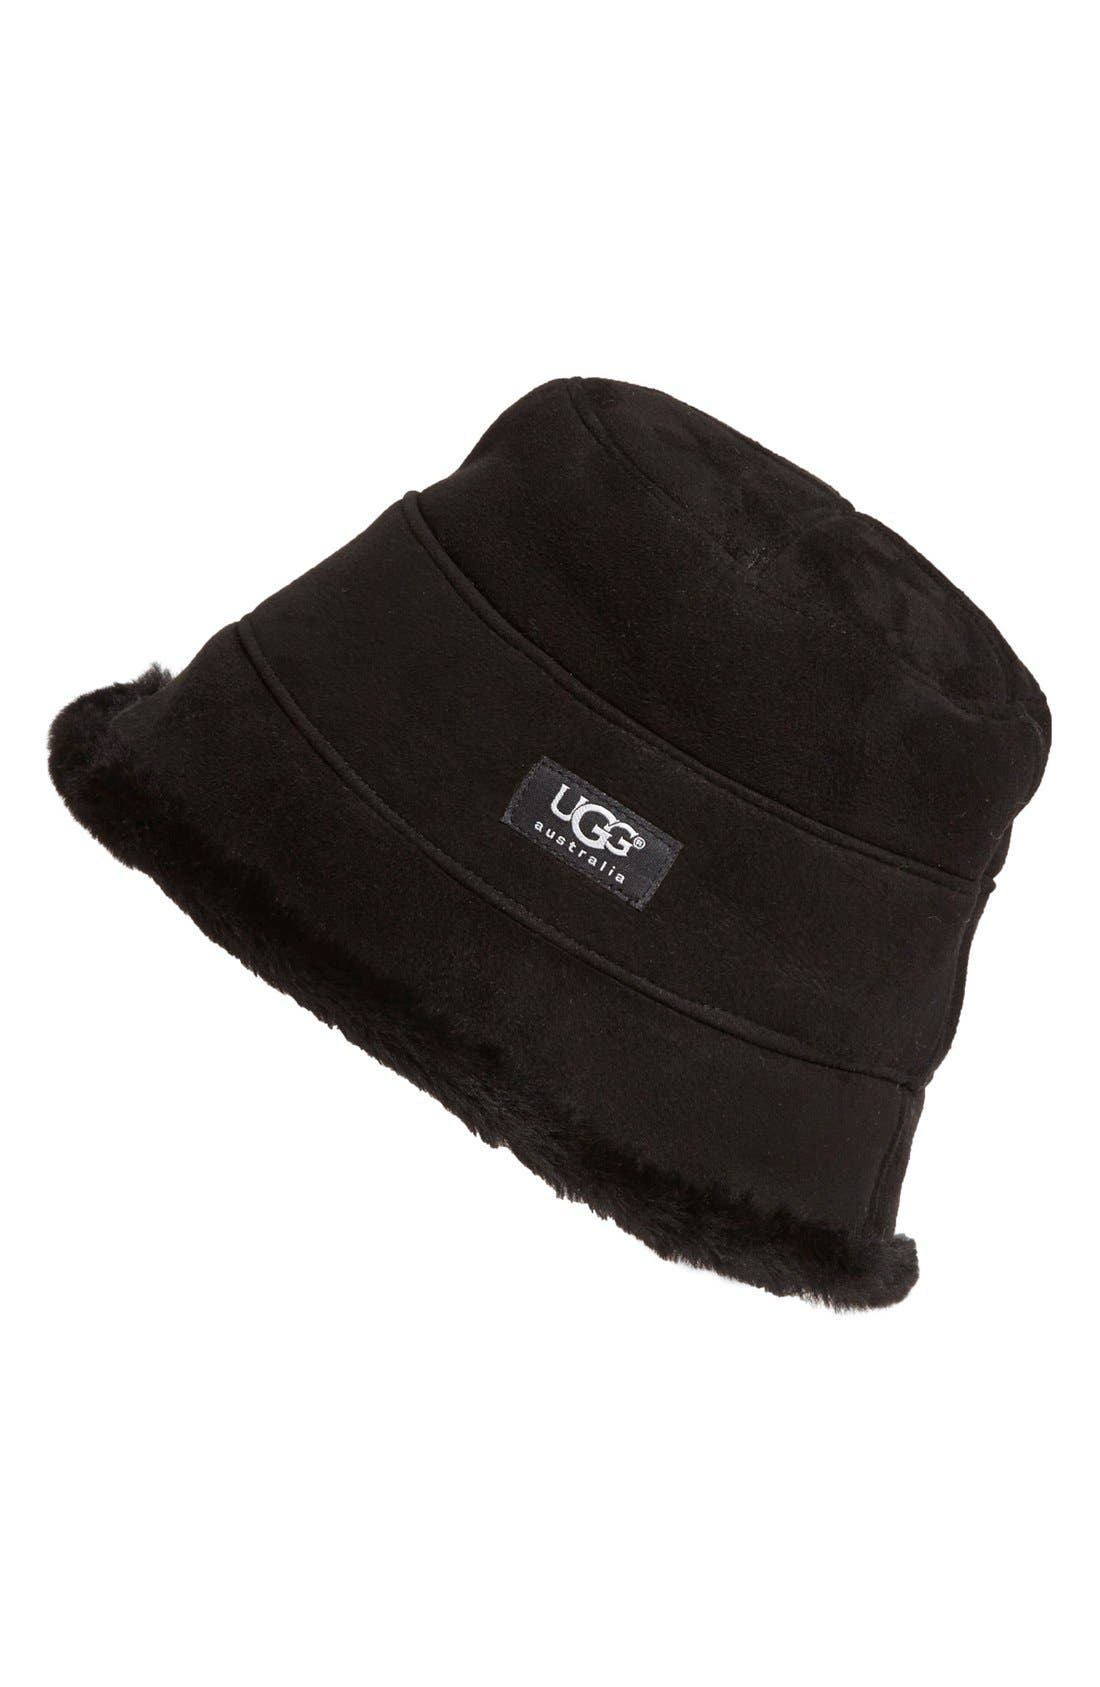 Alternate Image 1 Selected - UGG® Australia 'City' Genuine Shearling Bucket Hat